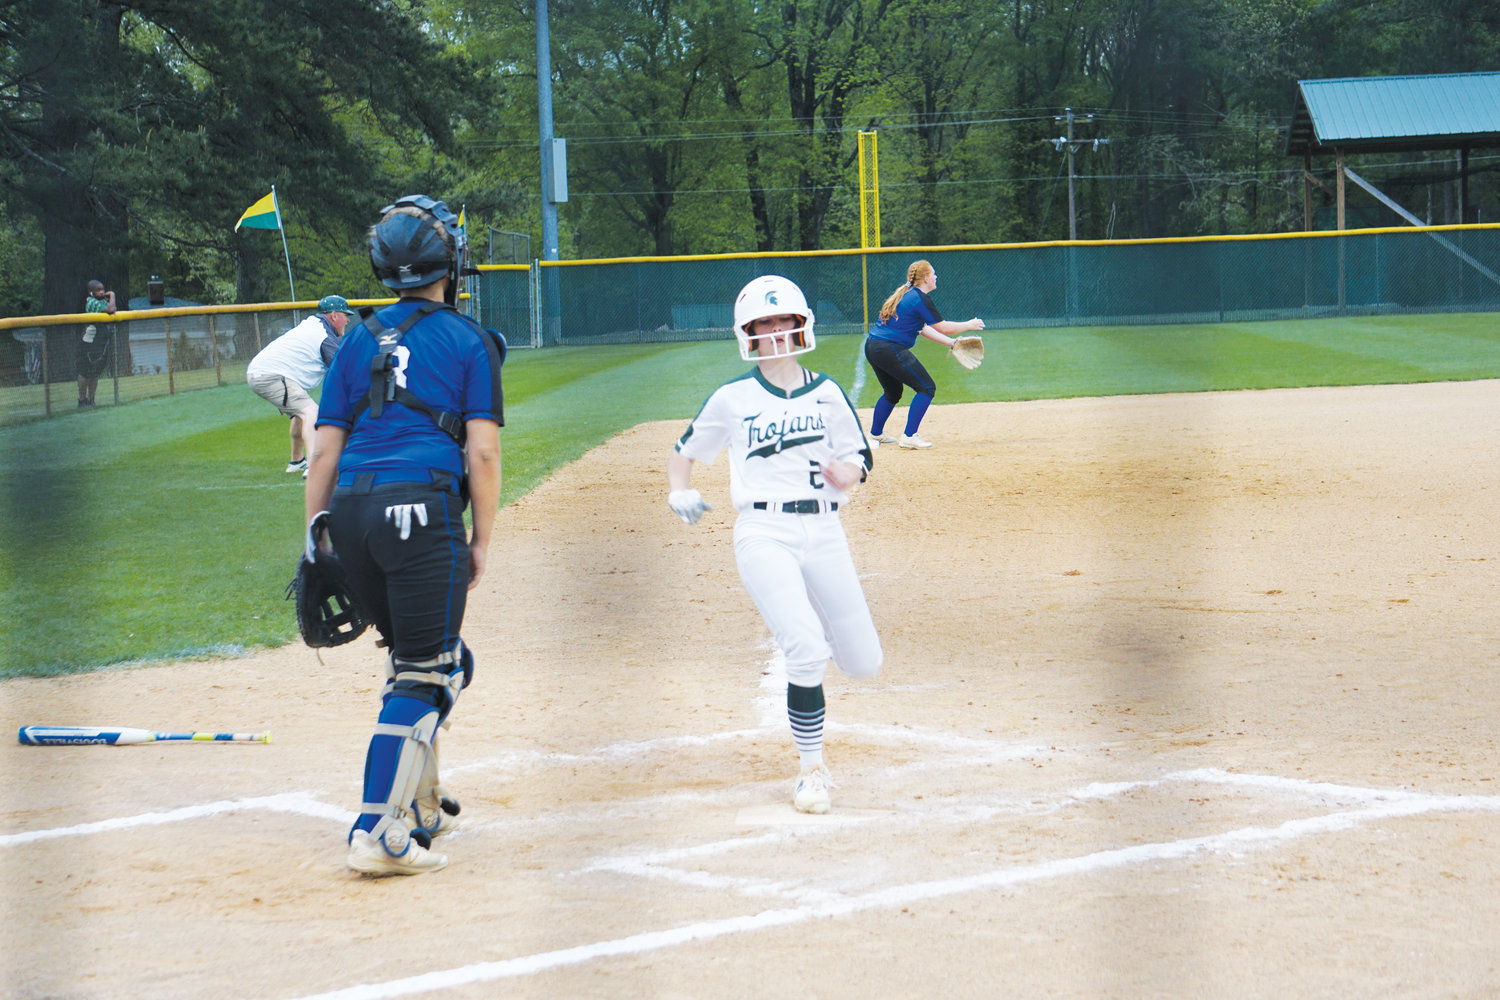 South Johnston's Katie Mitchell scores the first run of the game Wednesday evening against Clayton. She also batted in another run later in the Trojans' 4-2 loss.